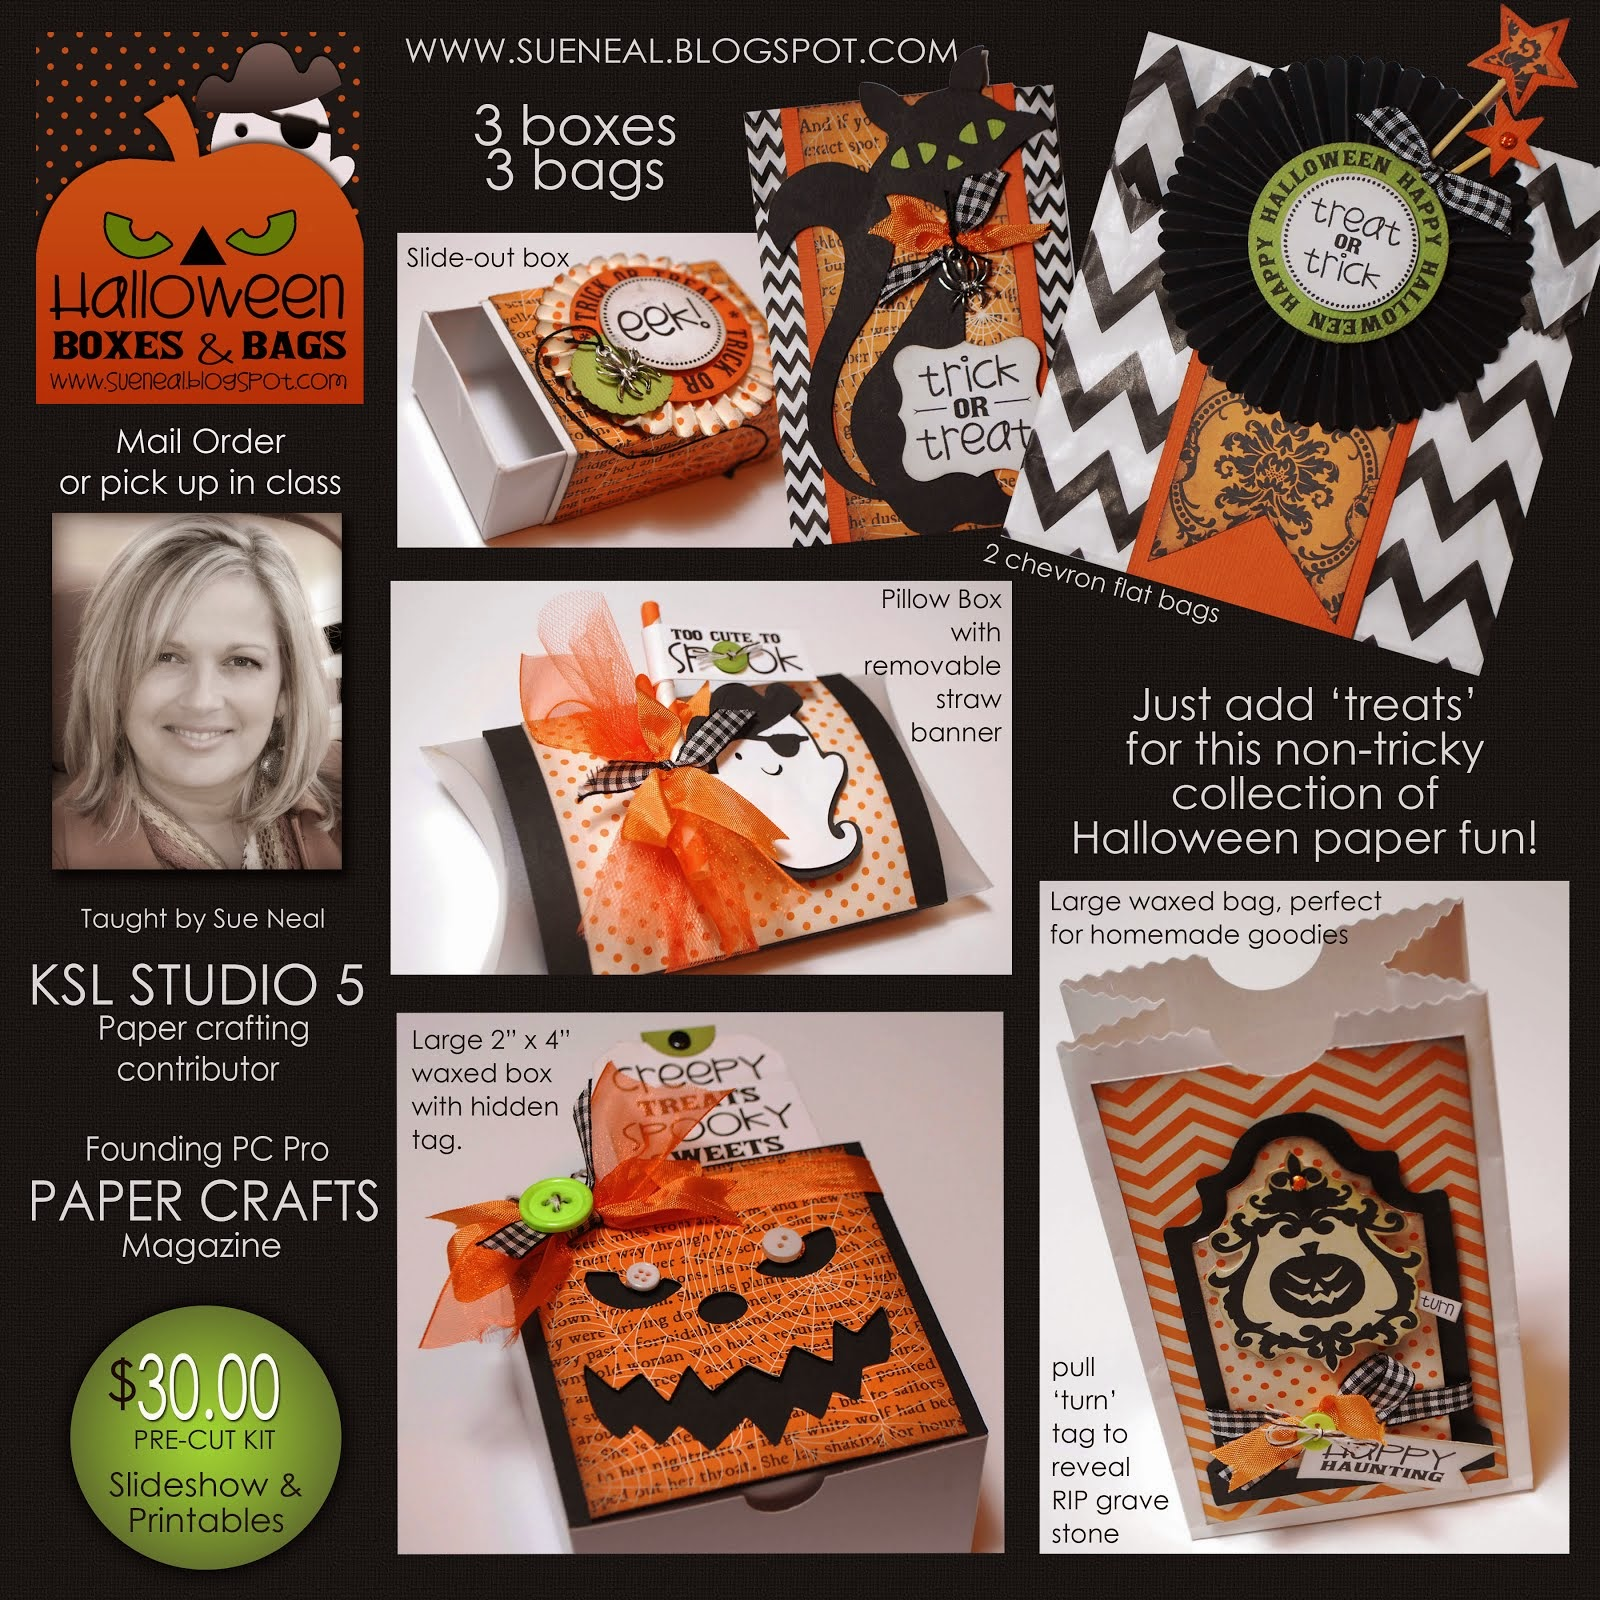 New Halloween Boxes & Bags Kit